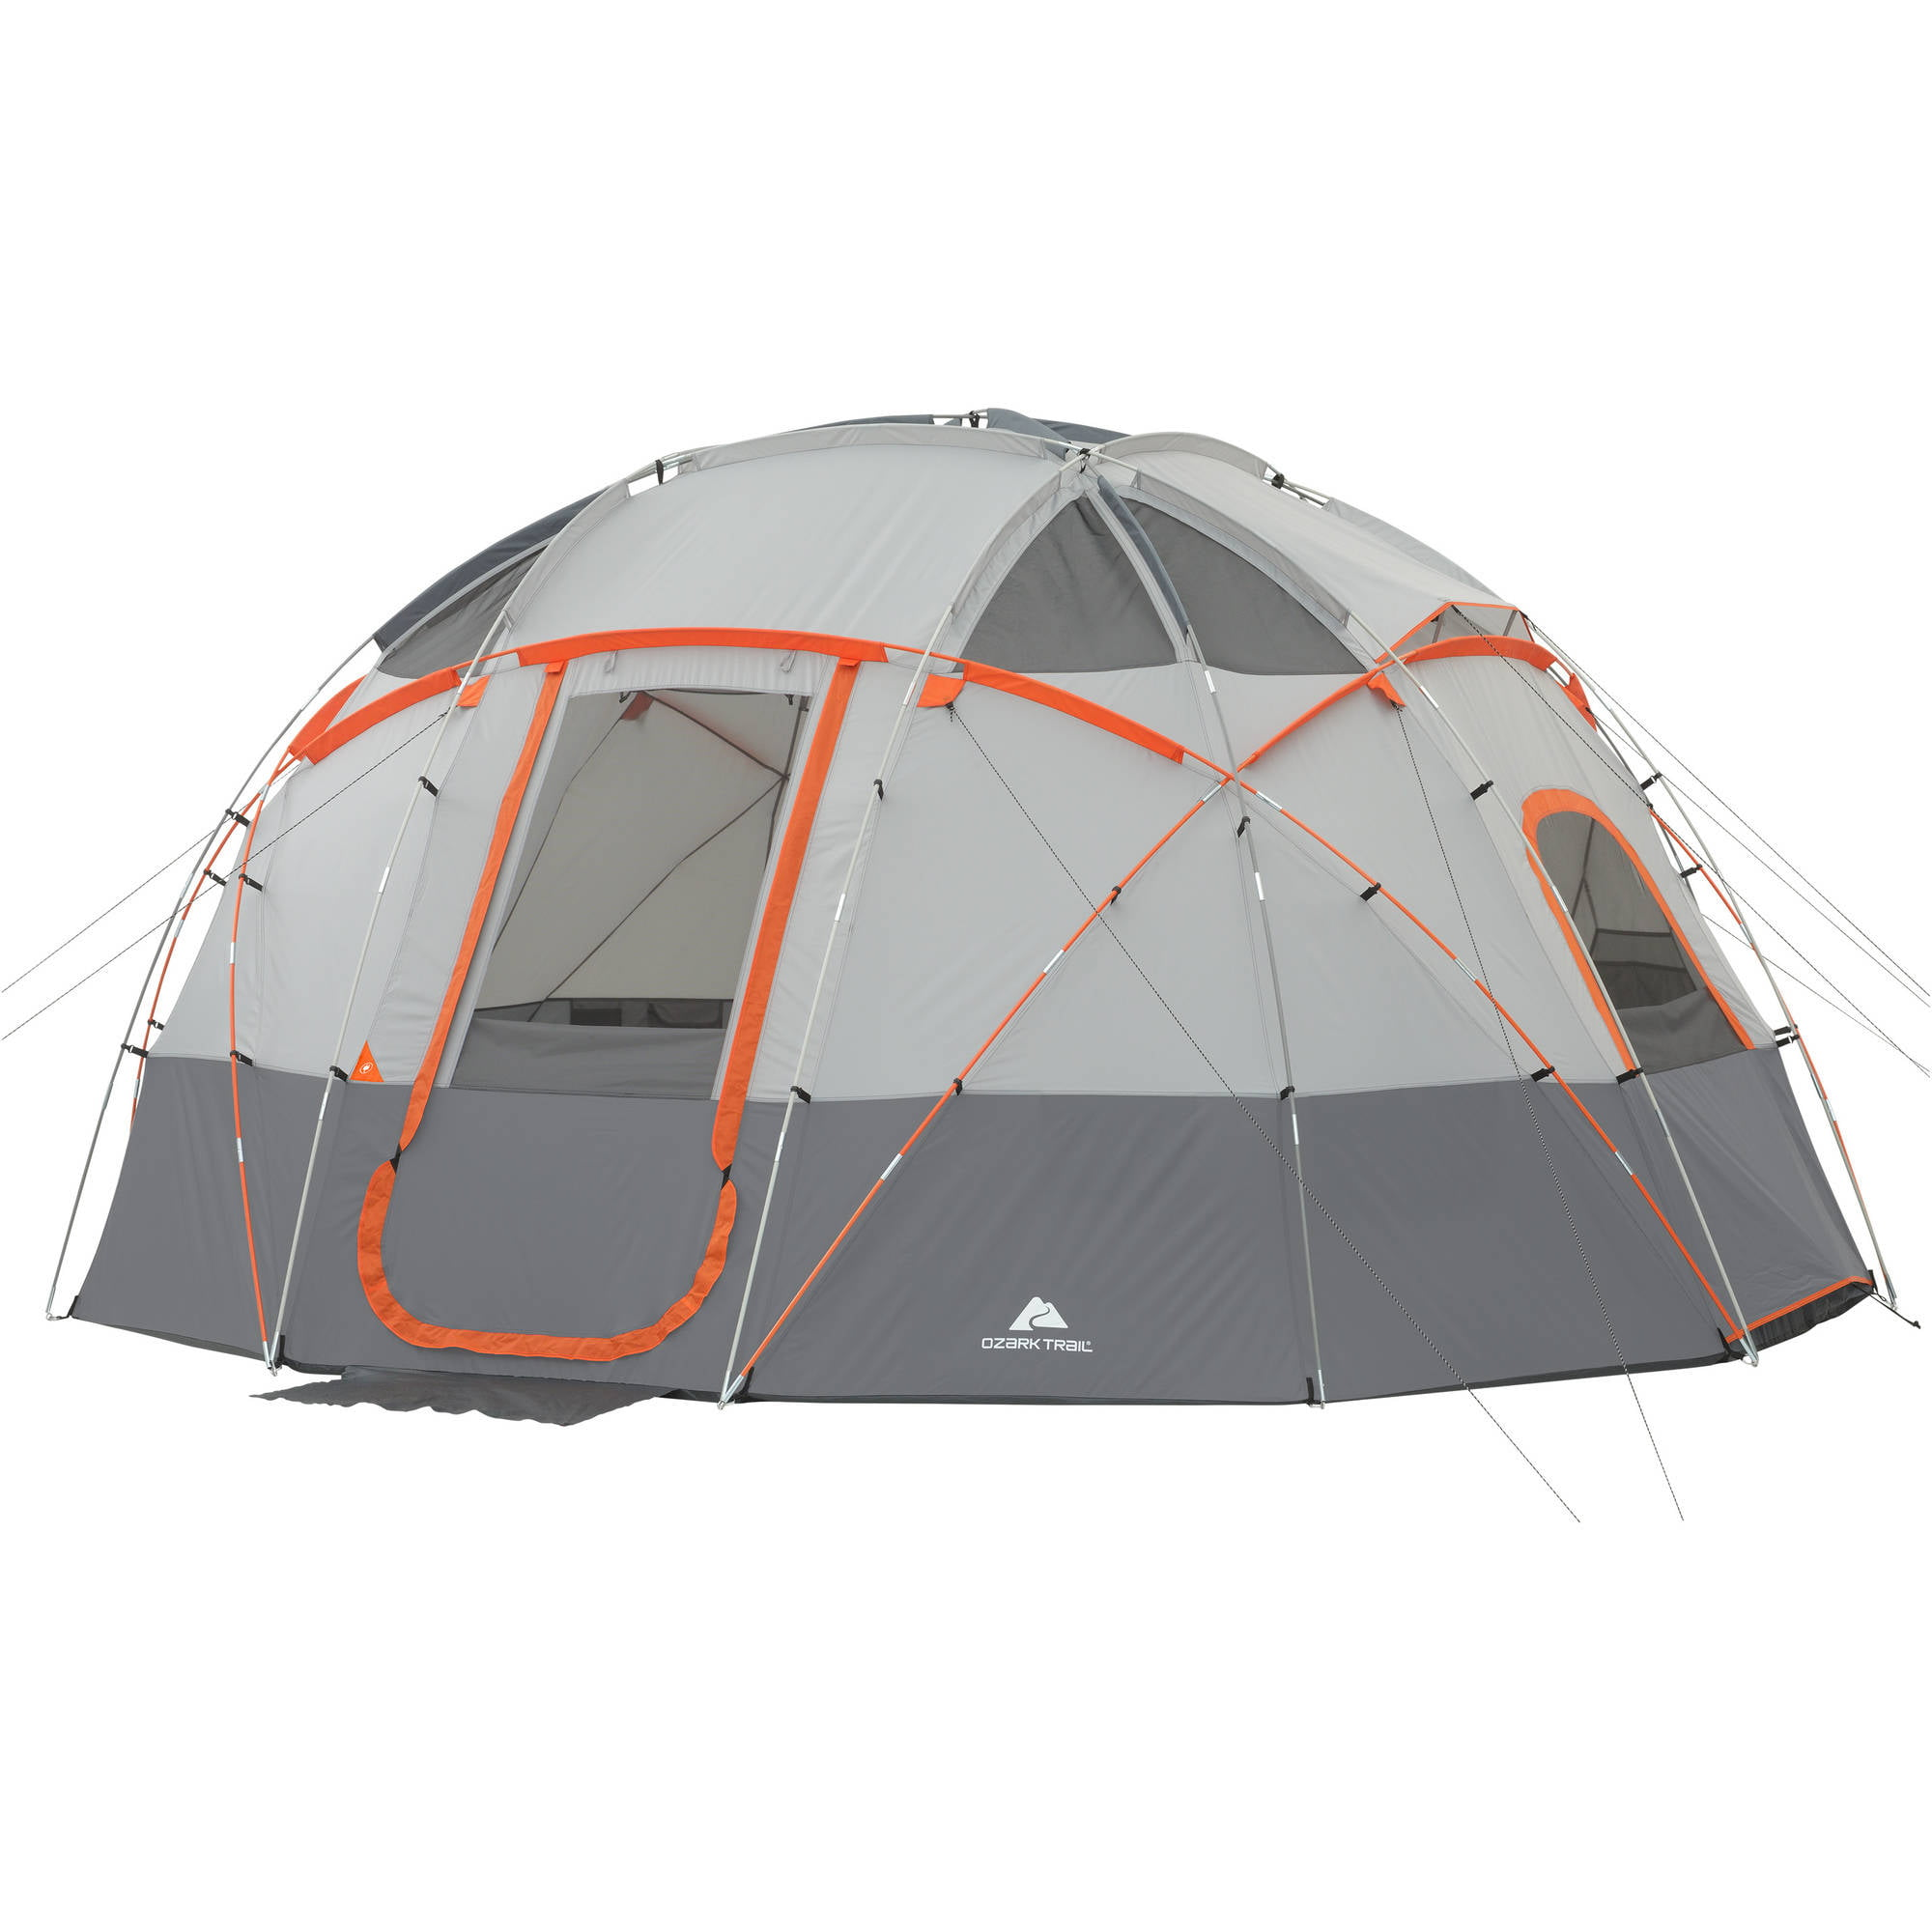 Ozark Trail 16' x 16' Sphere Tent, Sleeps 12